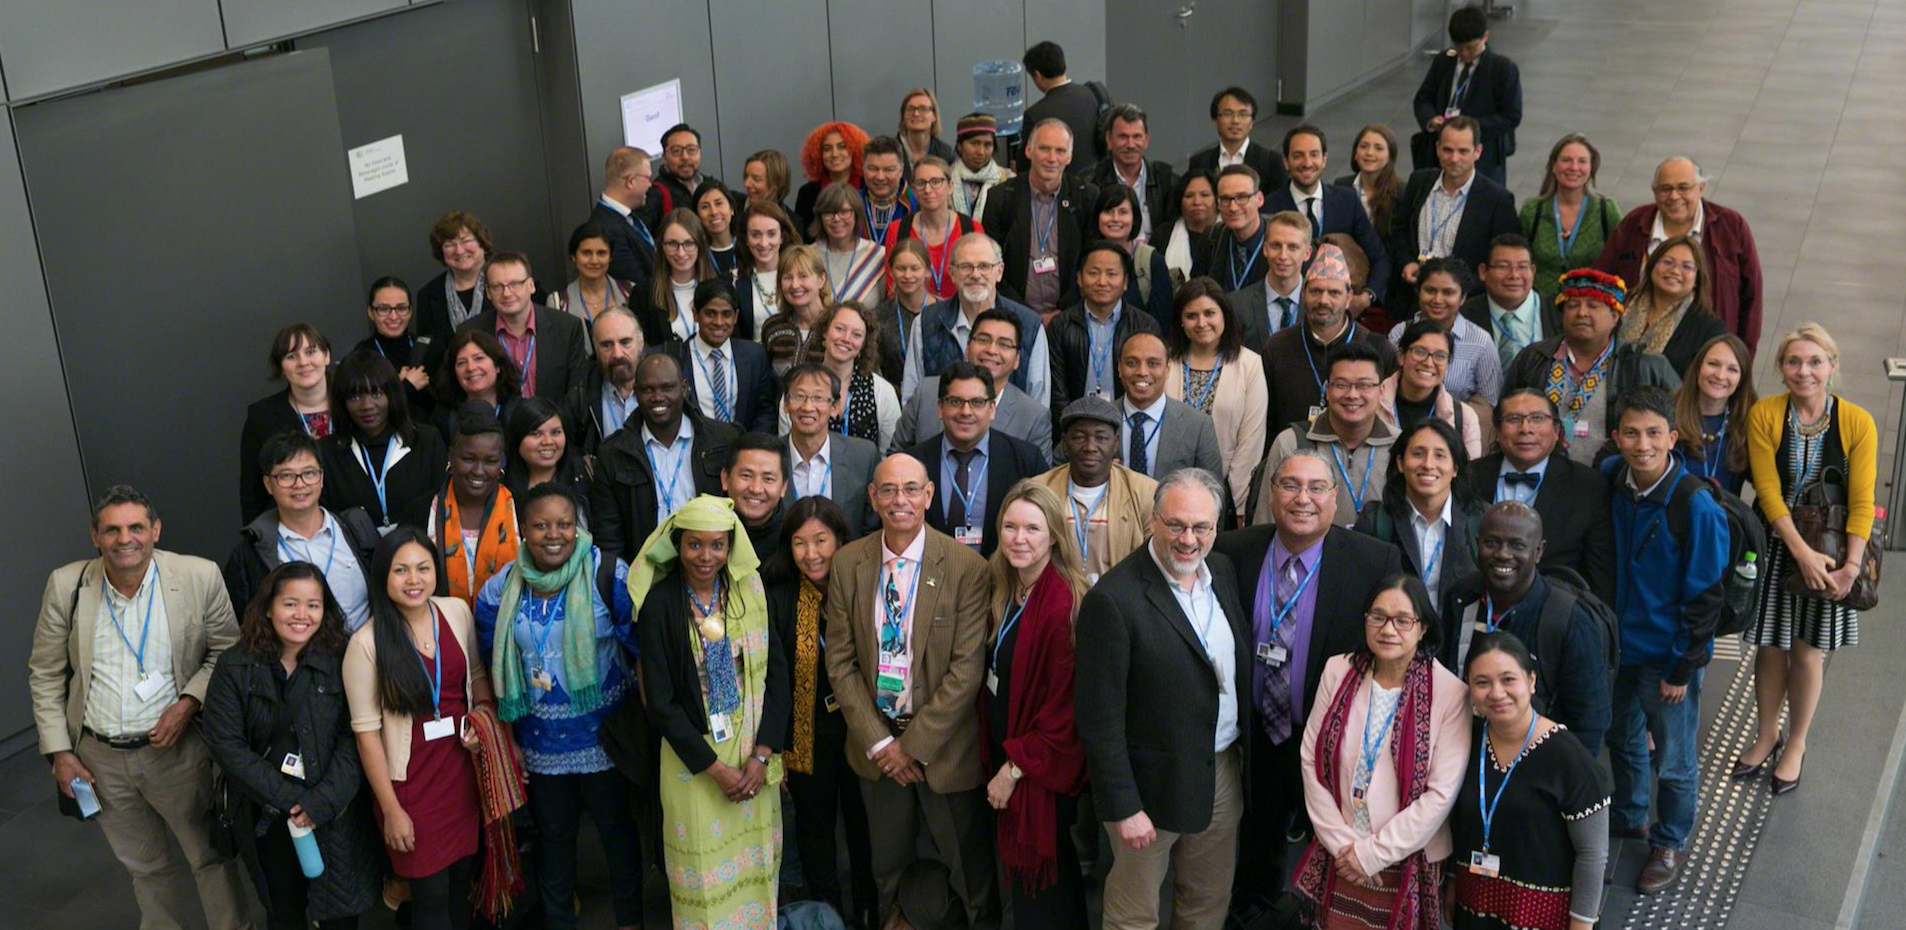 LCIPP workshop group photo, Bonn, Germany, 2018